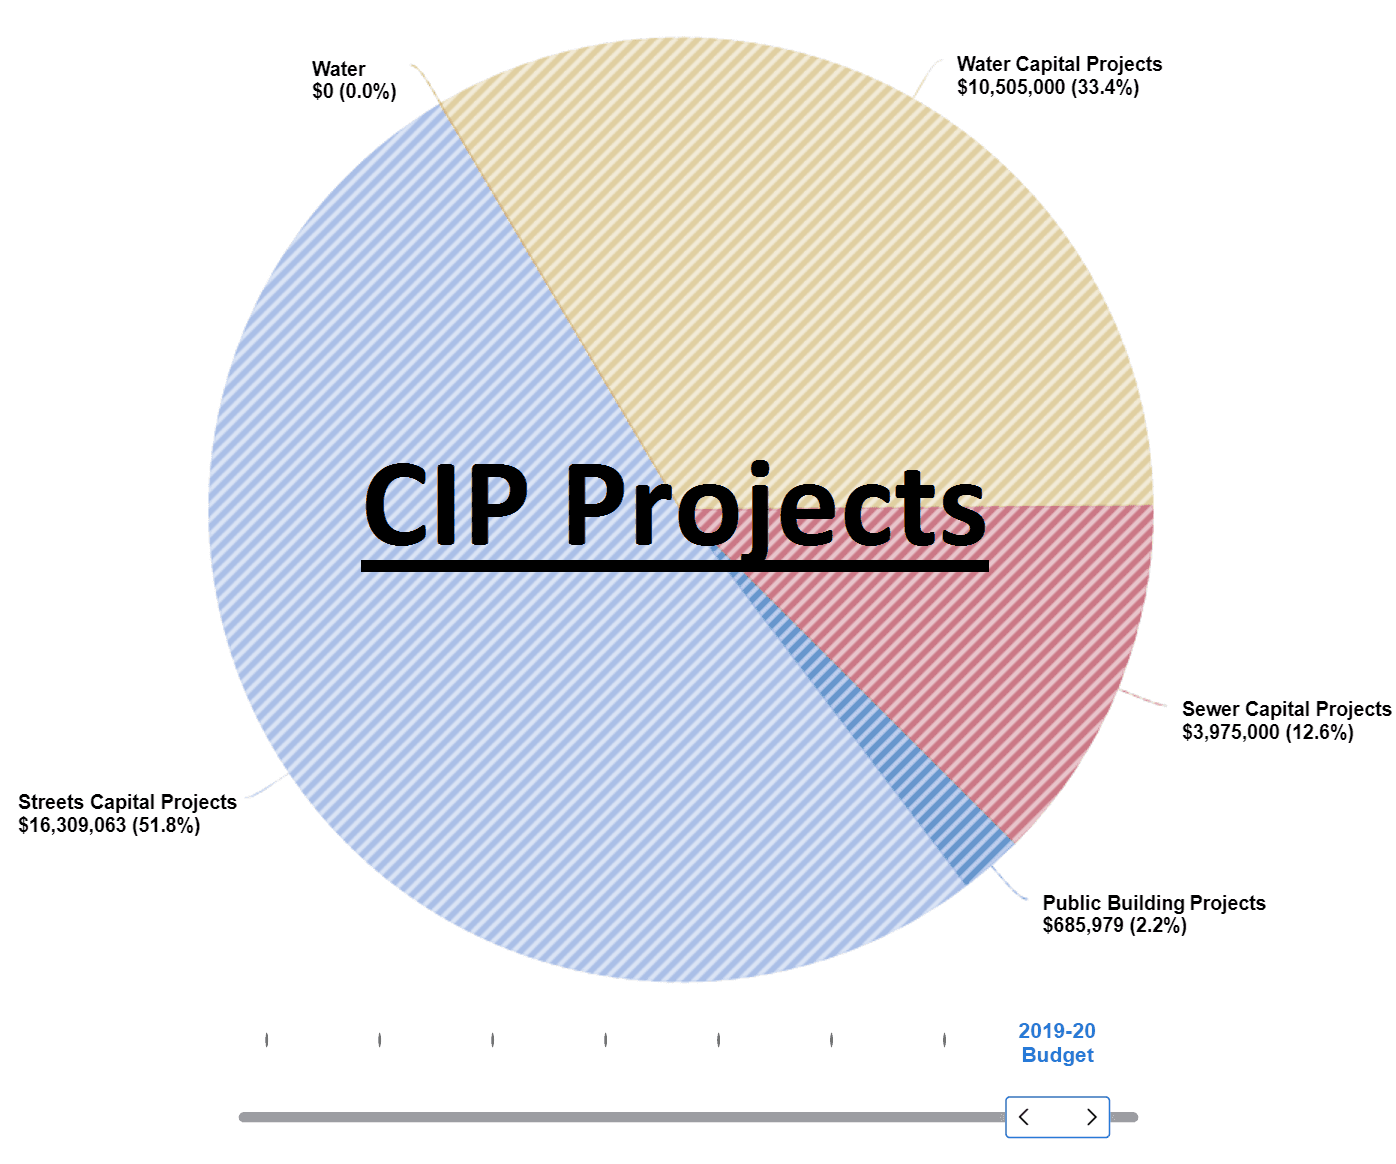 CIP projects